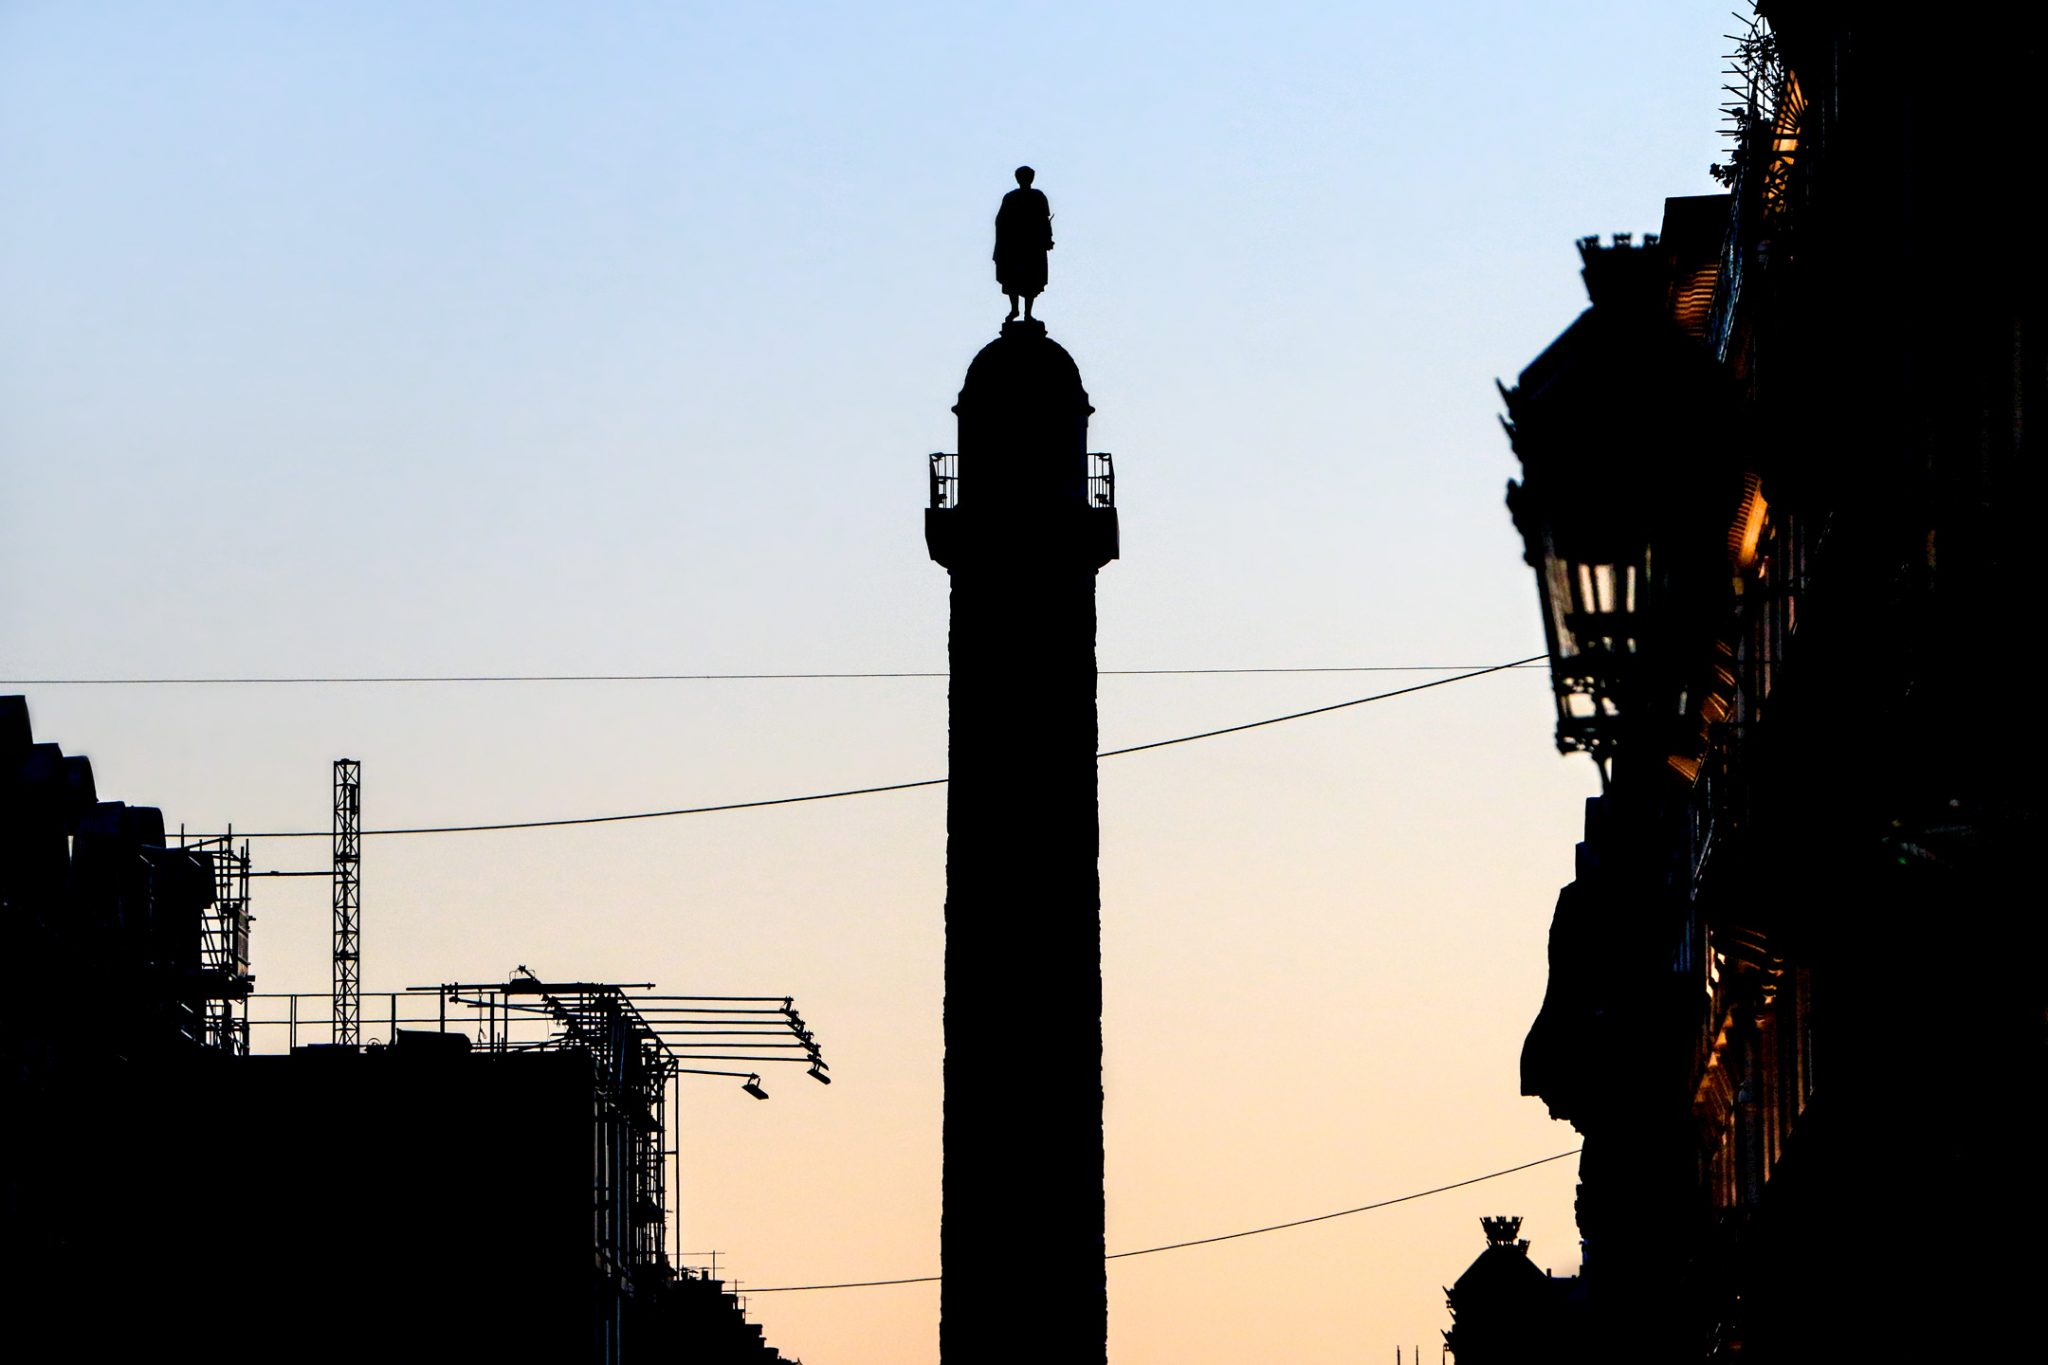 French Photographer Landscape Photography Place Vendôme at sunset